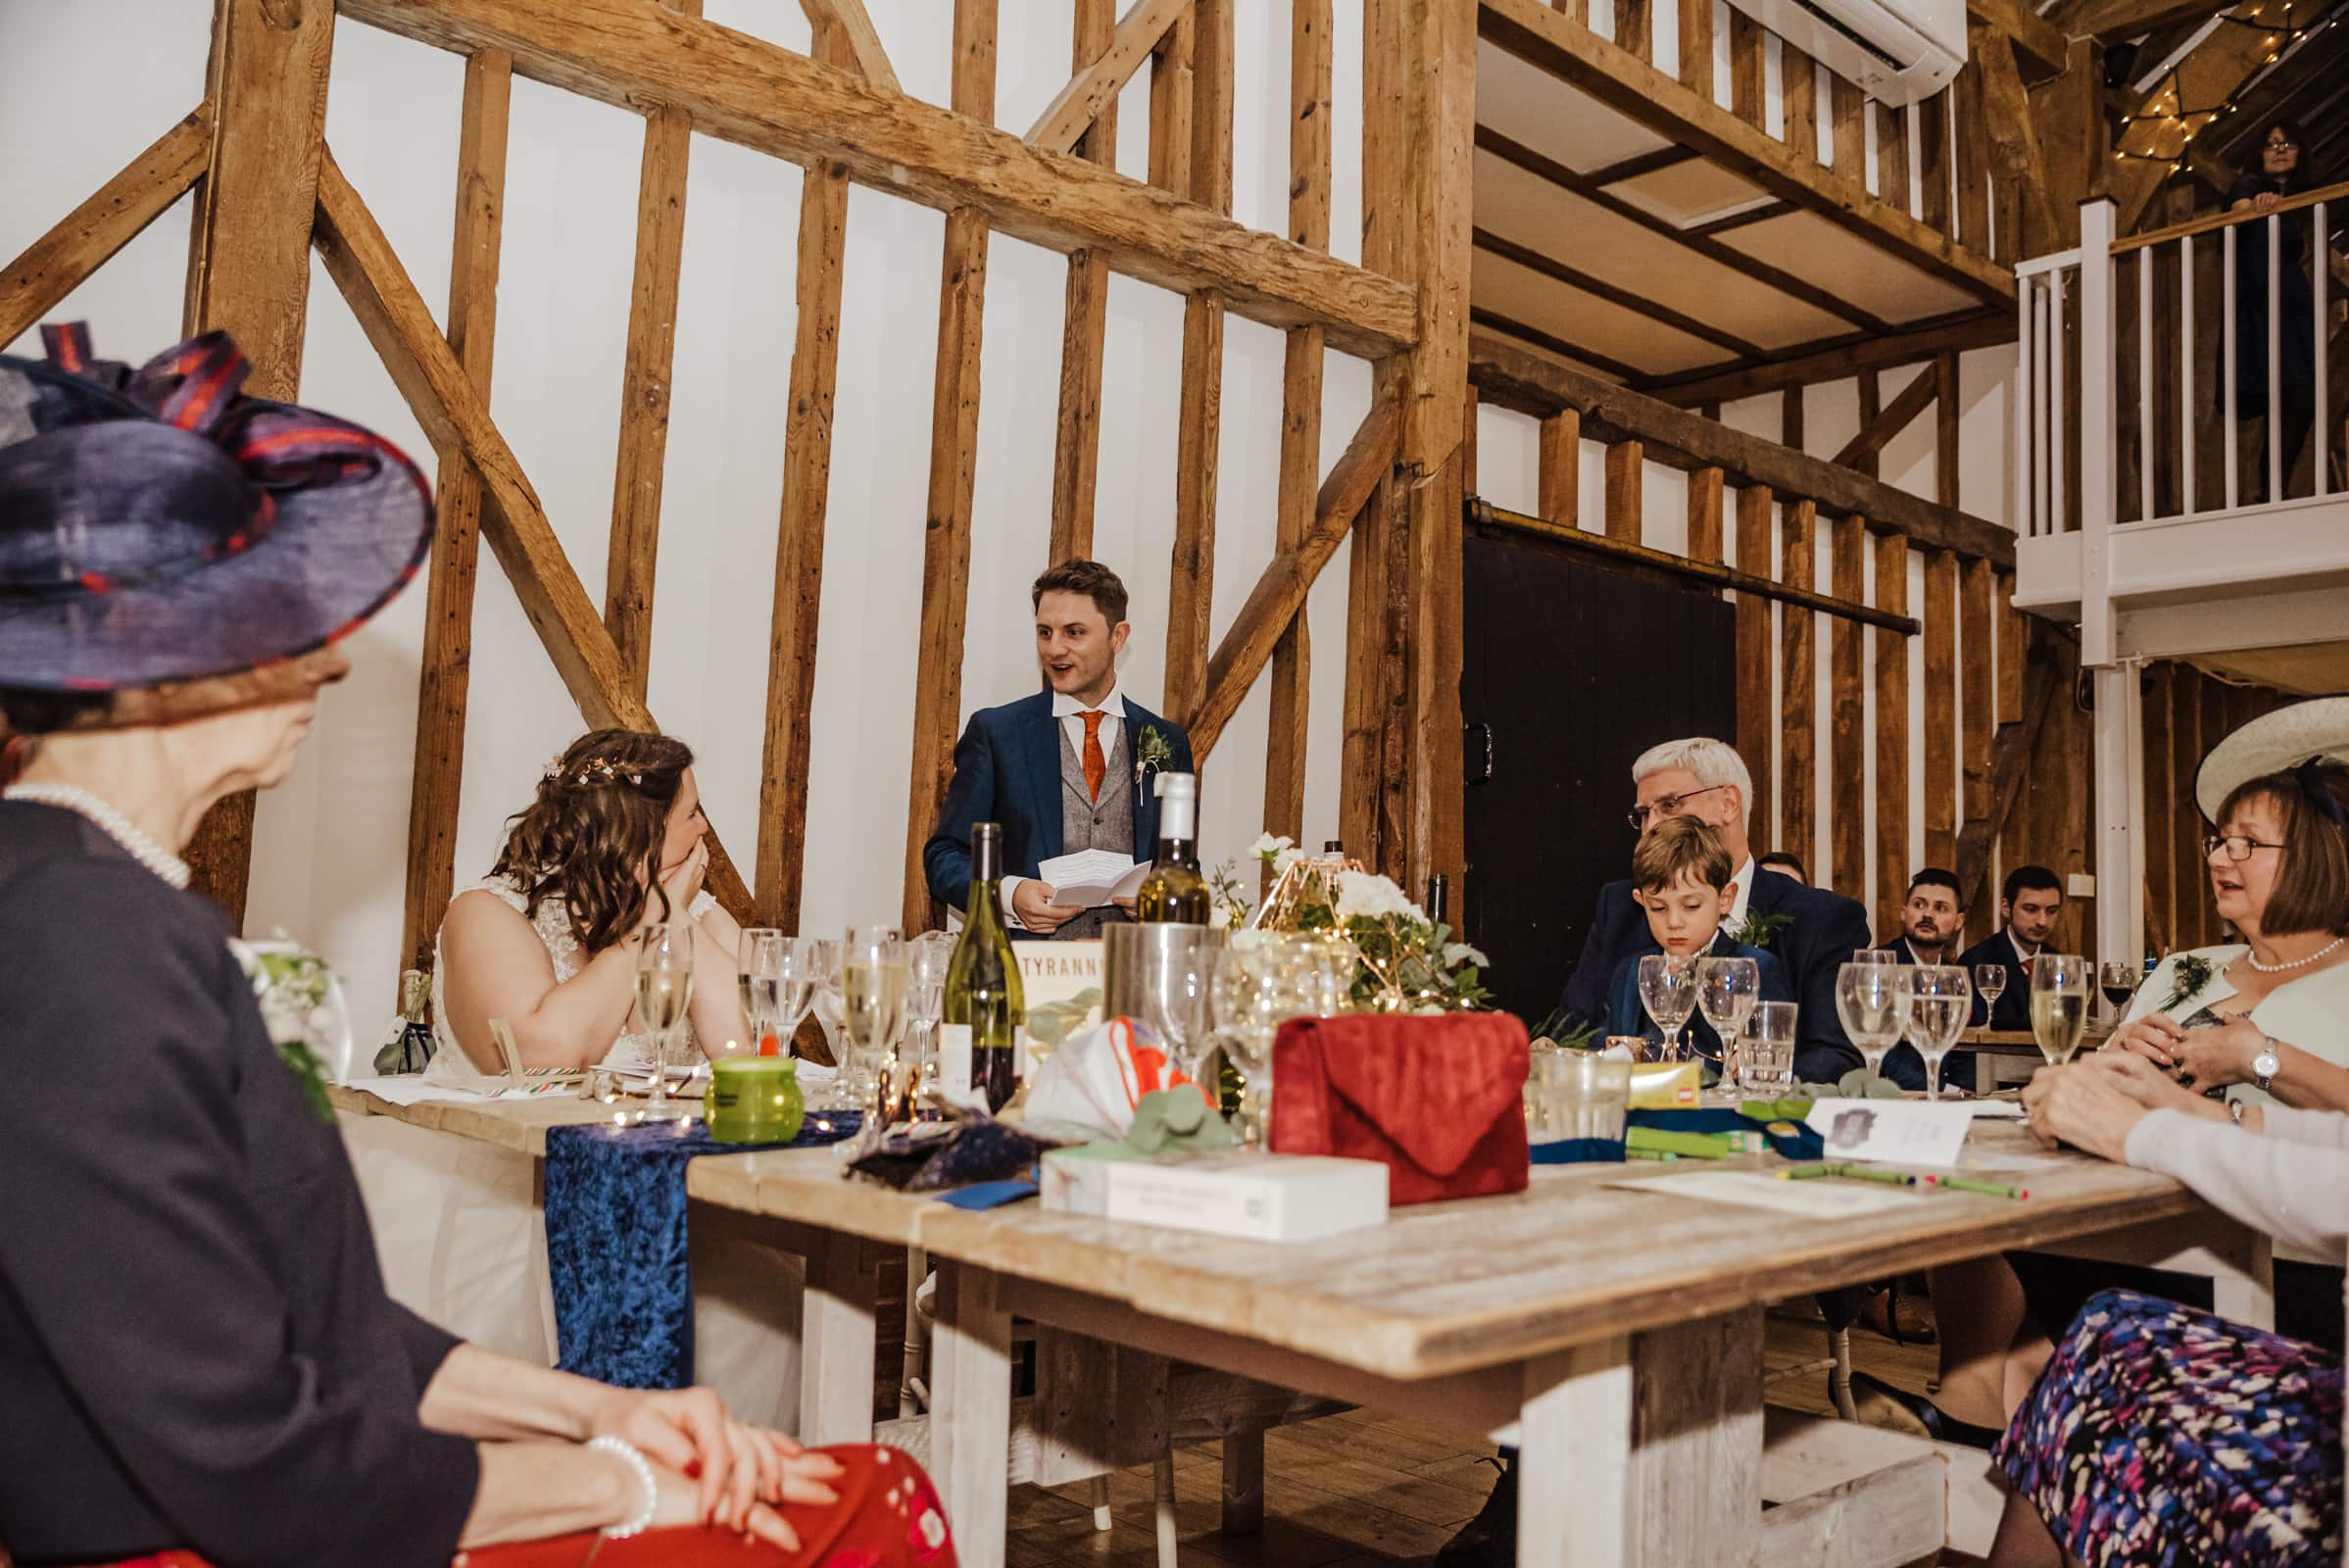 Groom giving speach at the reception Roshni photography The Milling Barn, Bluntswood Hall, Throcking wedding photographer